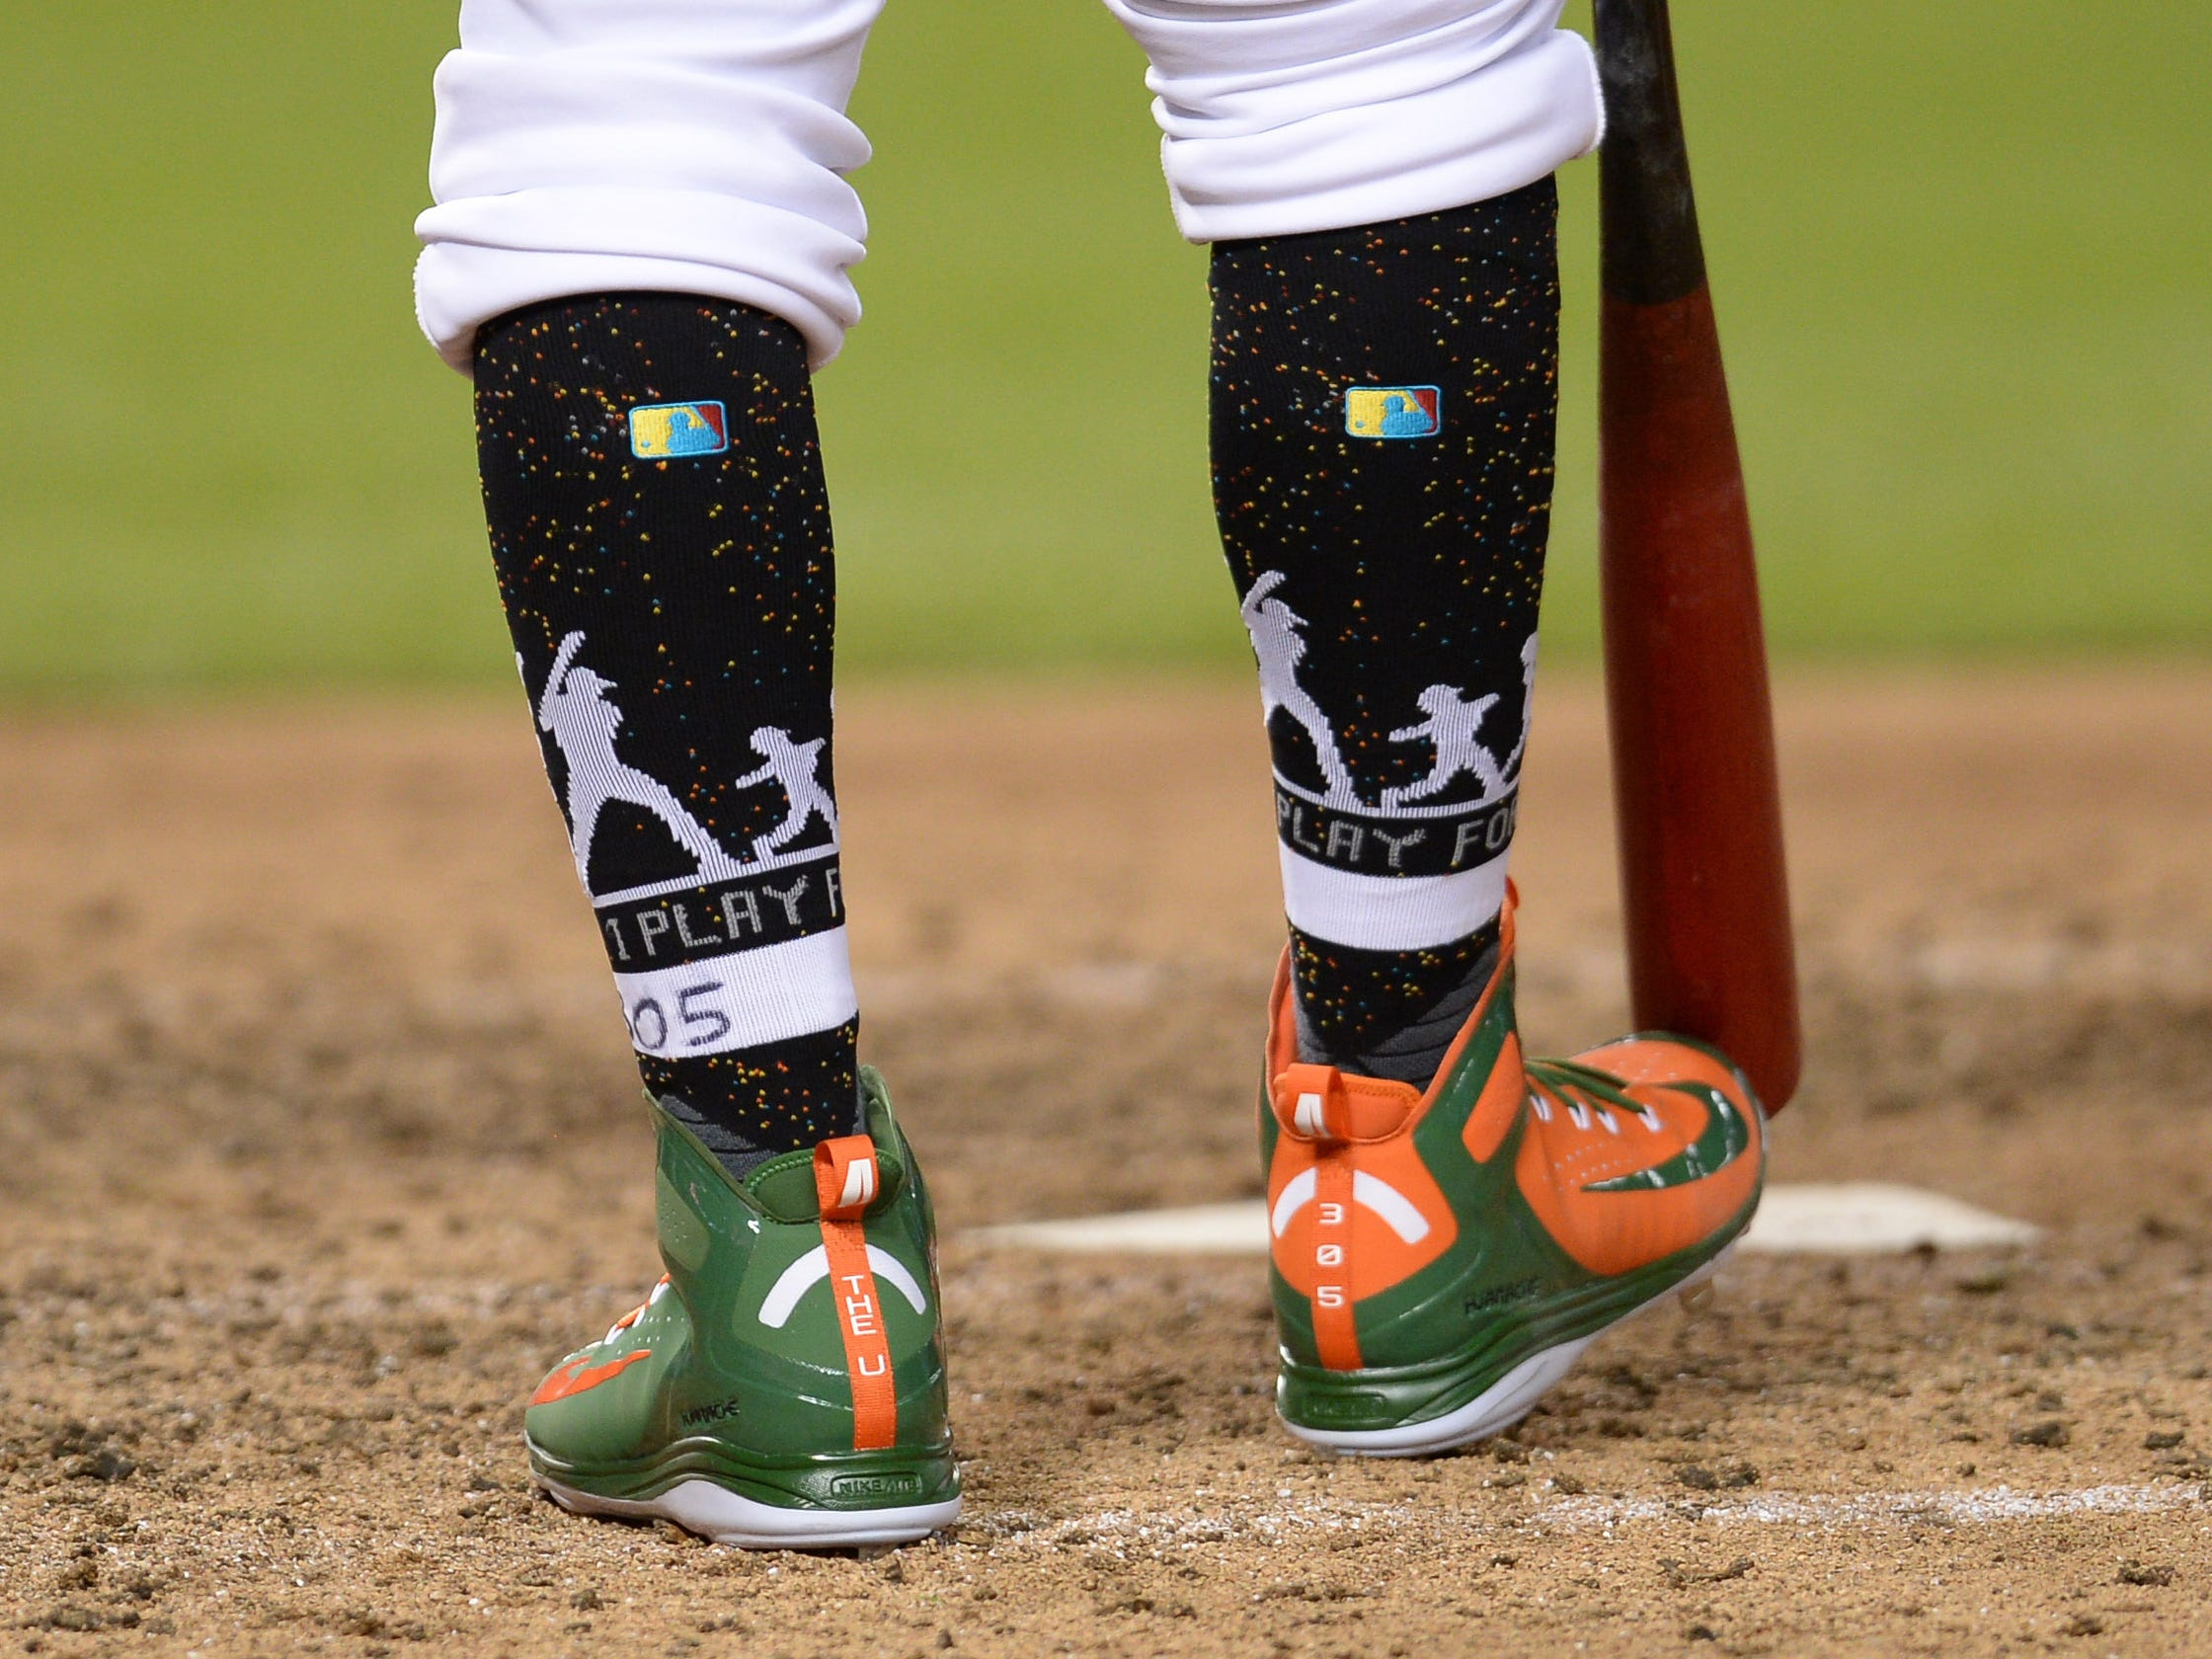 Aug 25, 2018; Phoenix, AZ, USA; A look at the sneakers and socks of Arizona Diamondbacks center fielder Jon Jay (9) during the seventh inning against the Seattle Mariners at Chase Field. Mandatory Credit: Joe Camporeale-USA TODAY Sports